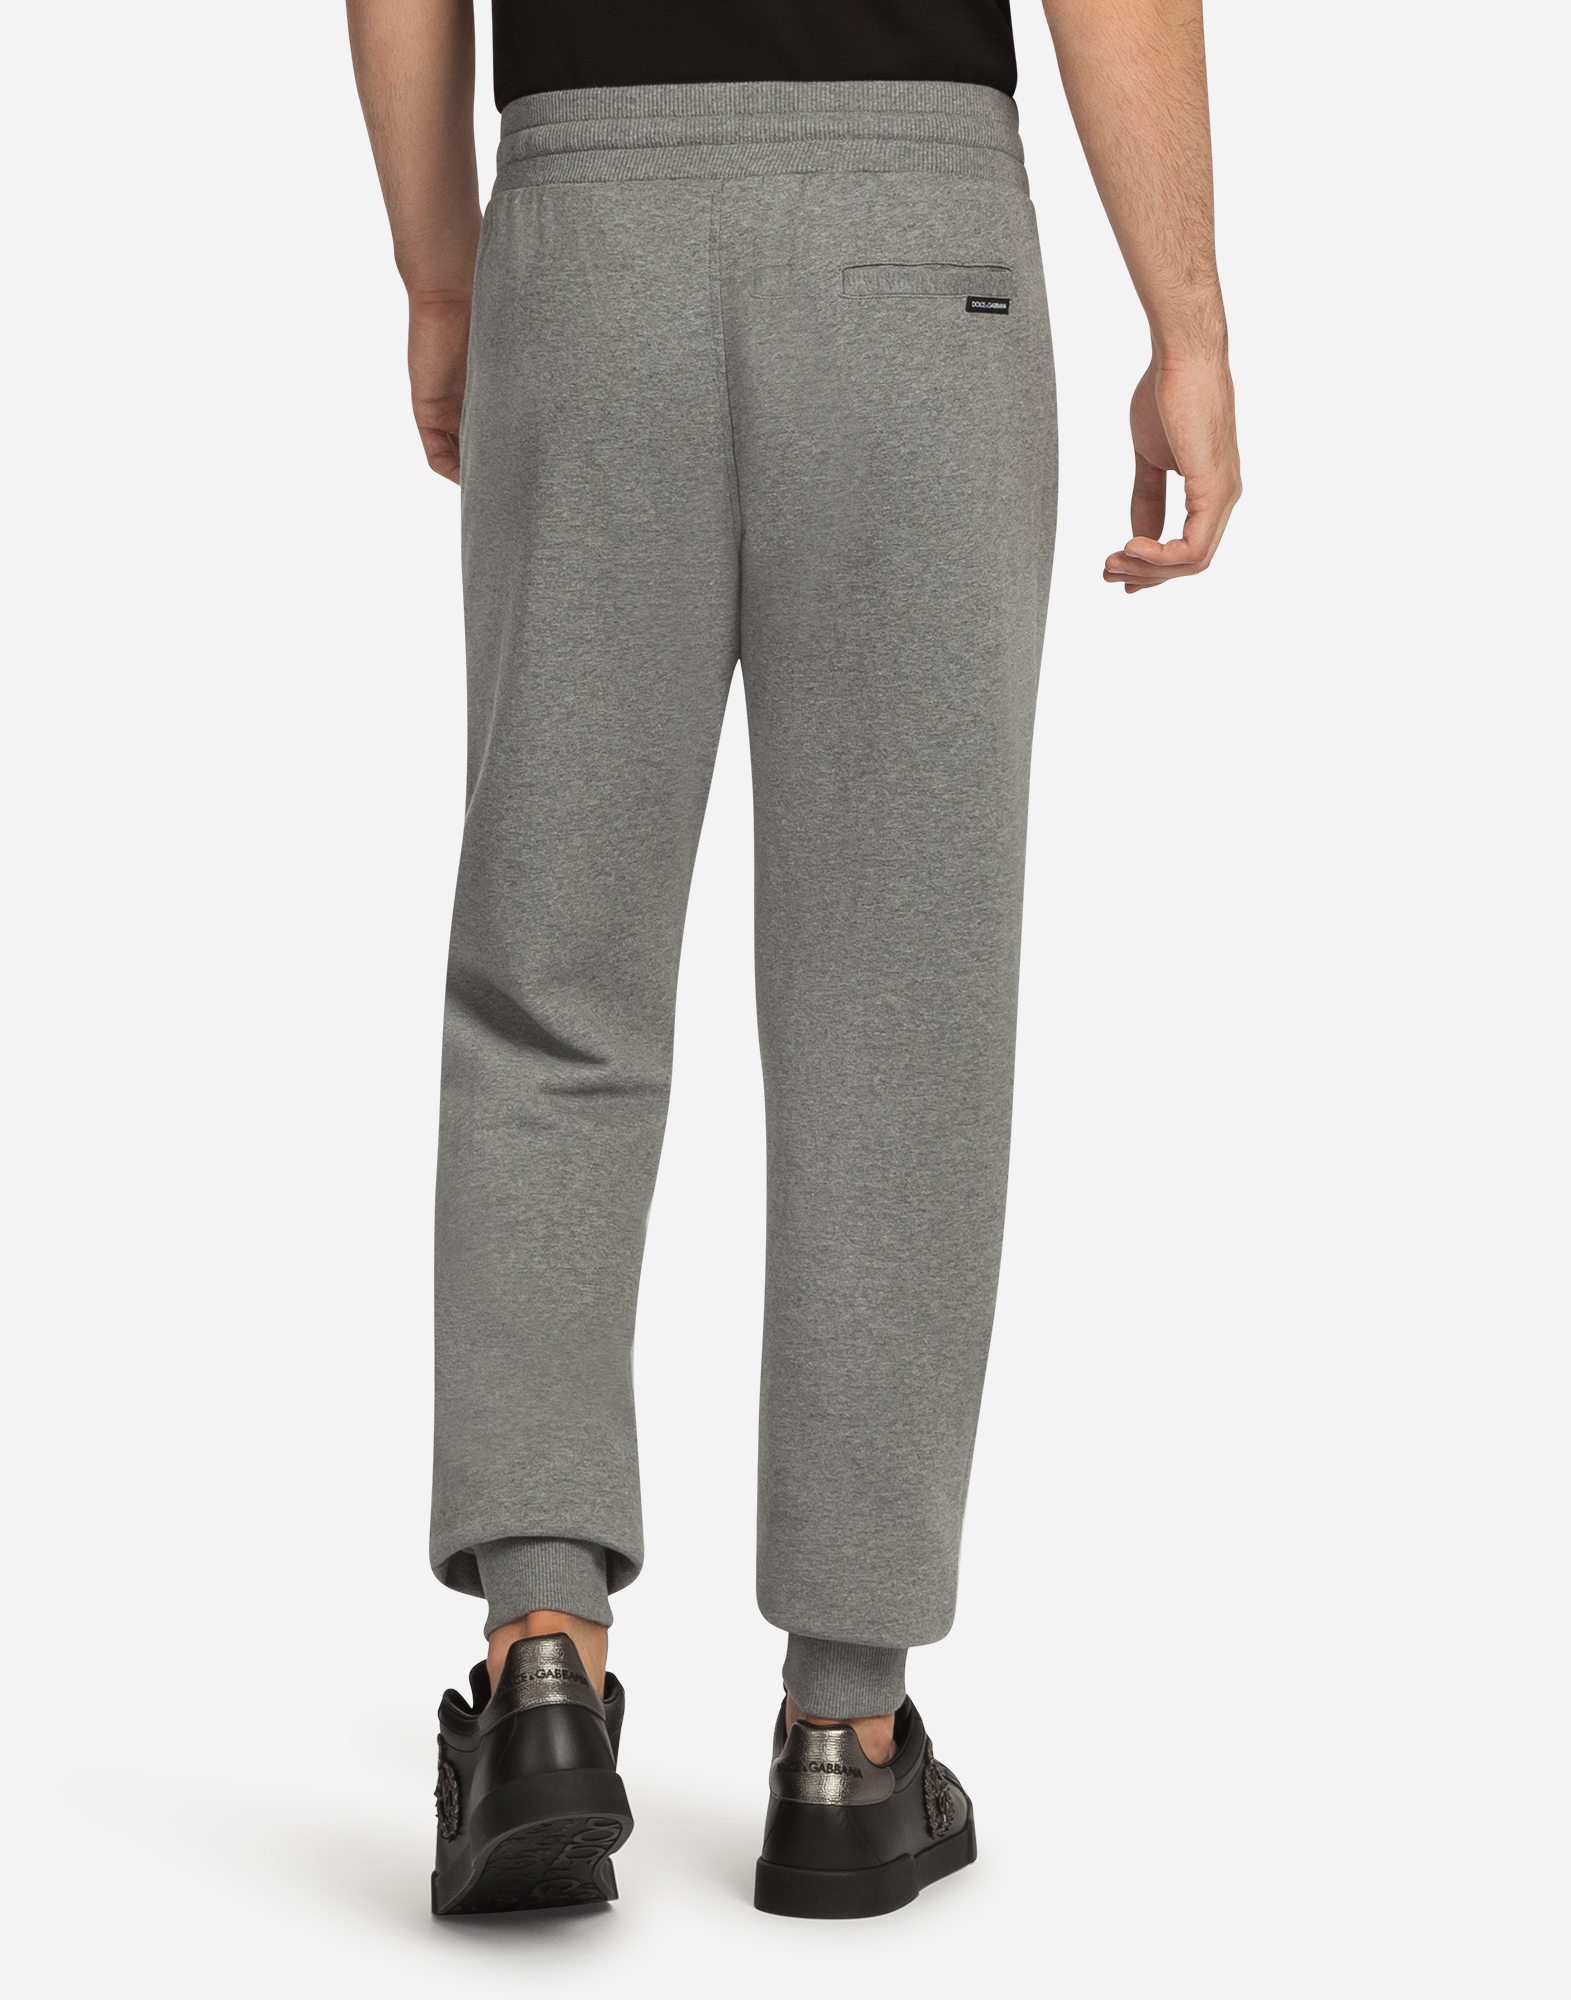 Dolce&Gabbana COTTON JOGGING PANTS WITH PATCHES